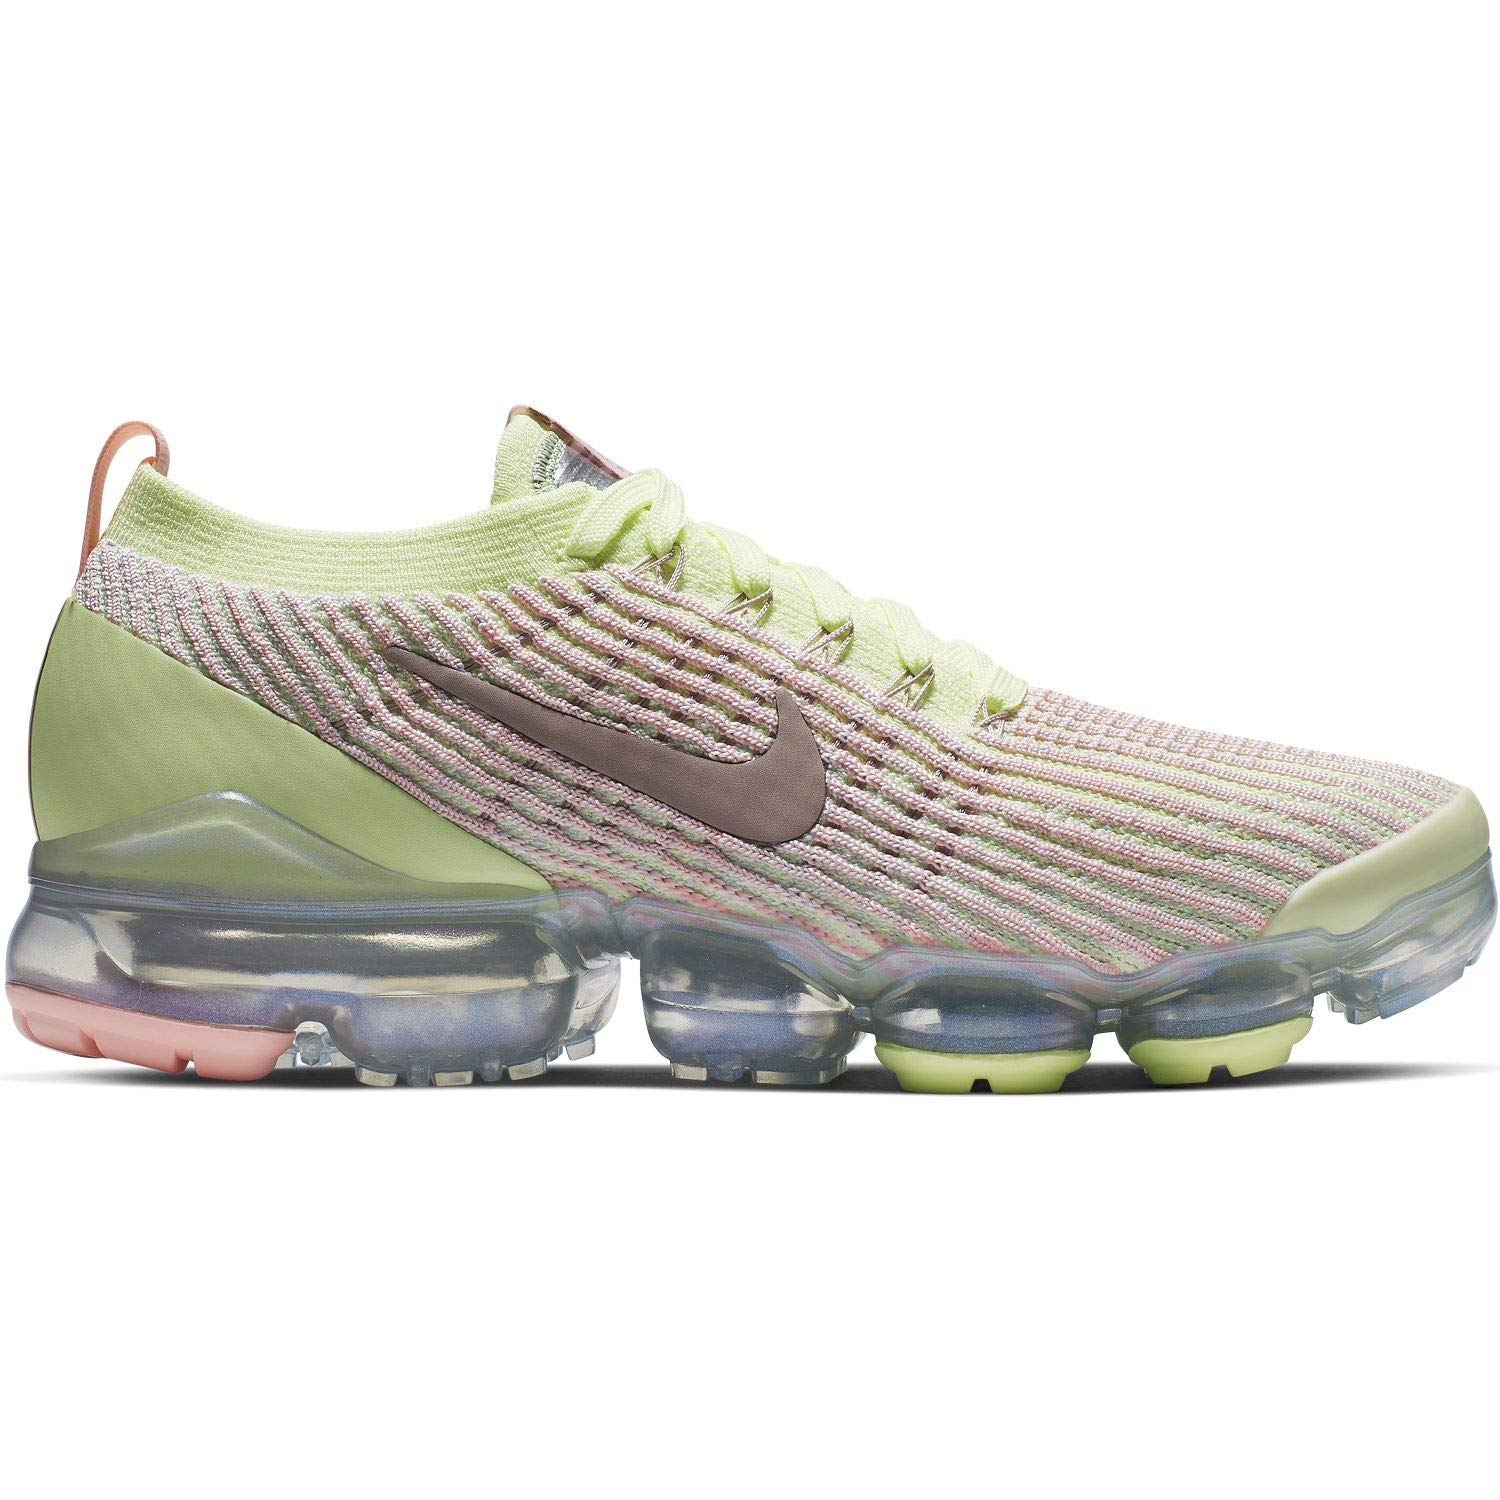 88869236536 Nike Women's W Air Vapormax Flyknit 3 Track & Field Shoes: Amazon.co.uk:  Shoes & Bags